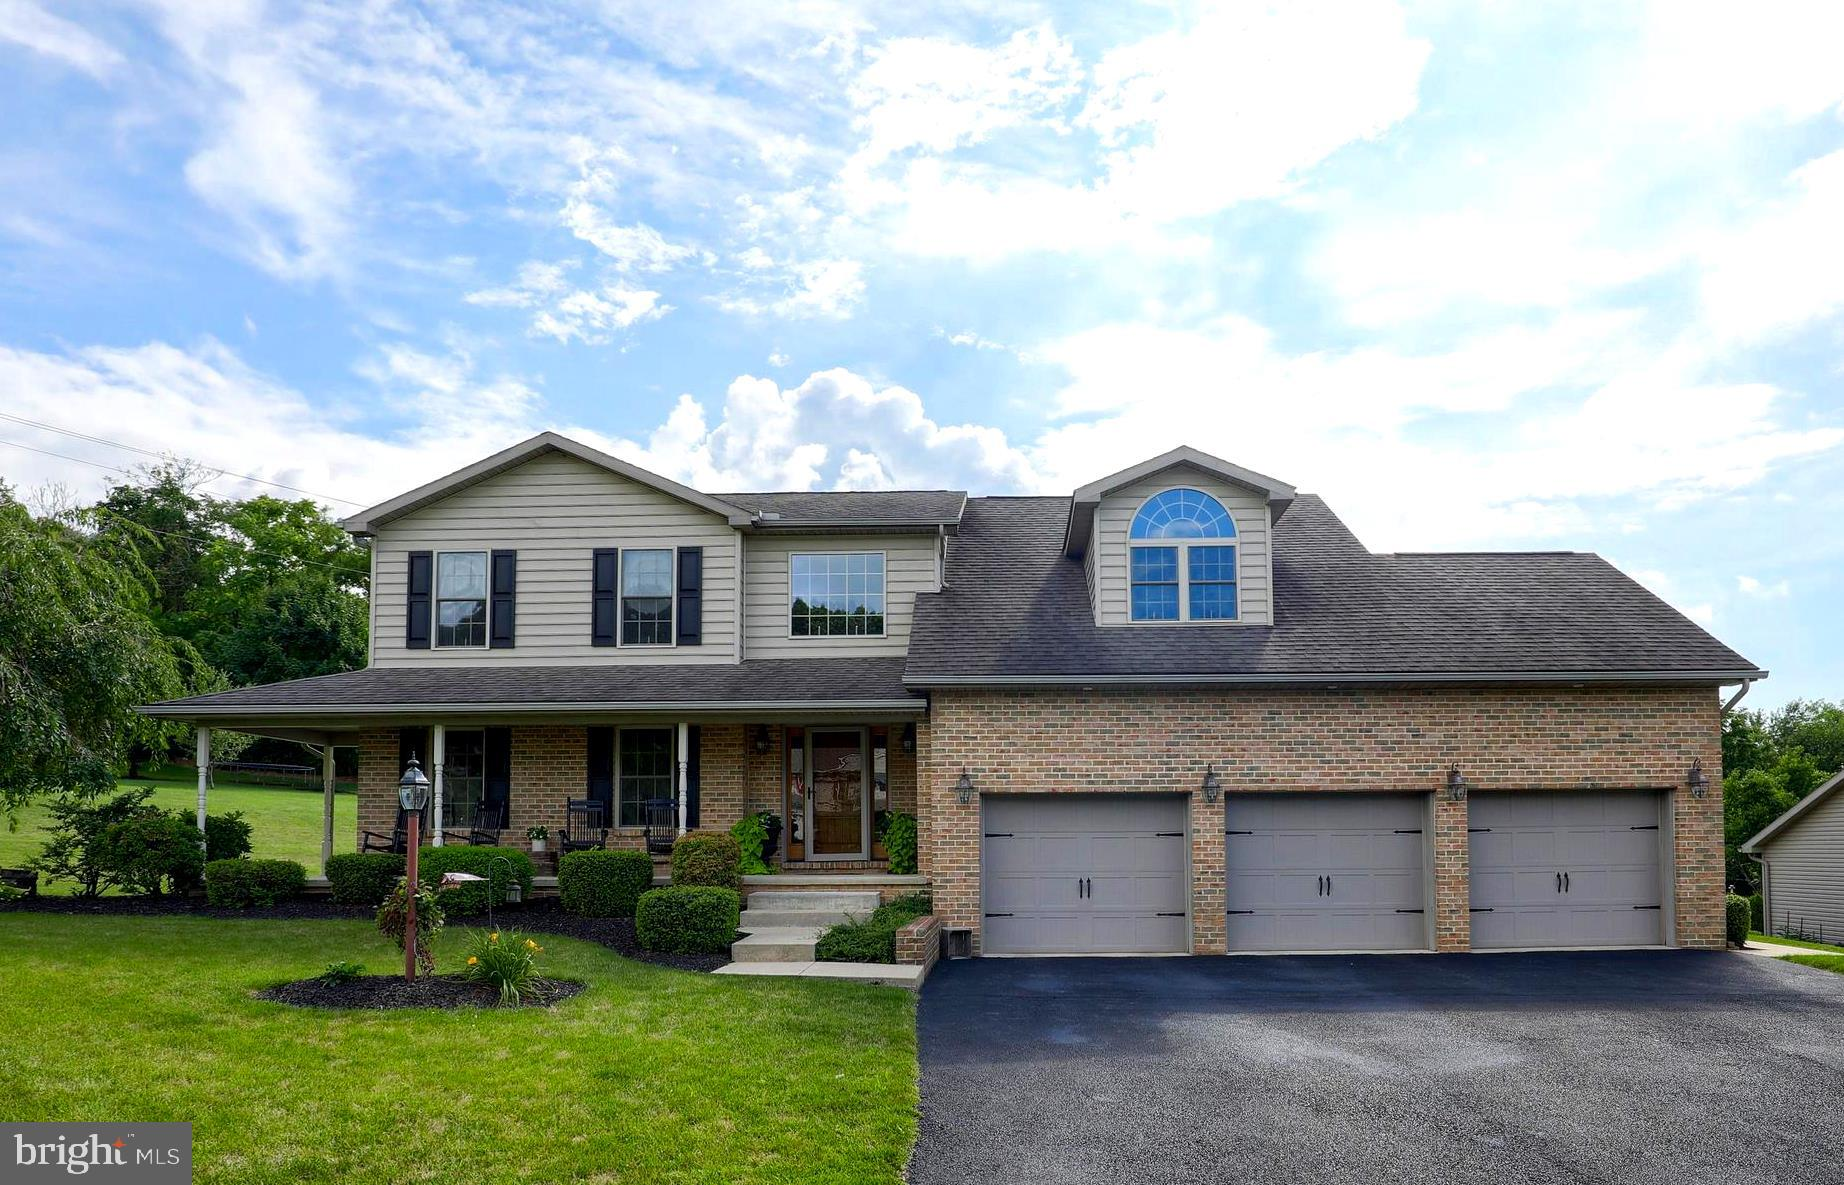 70 DAYTON COURT, WINDSOR, PA 17366